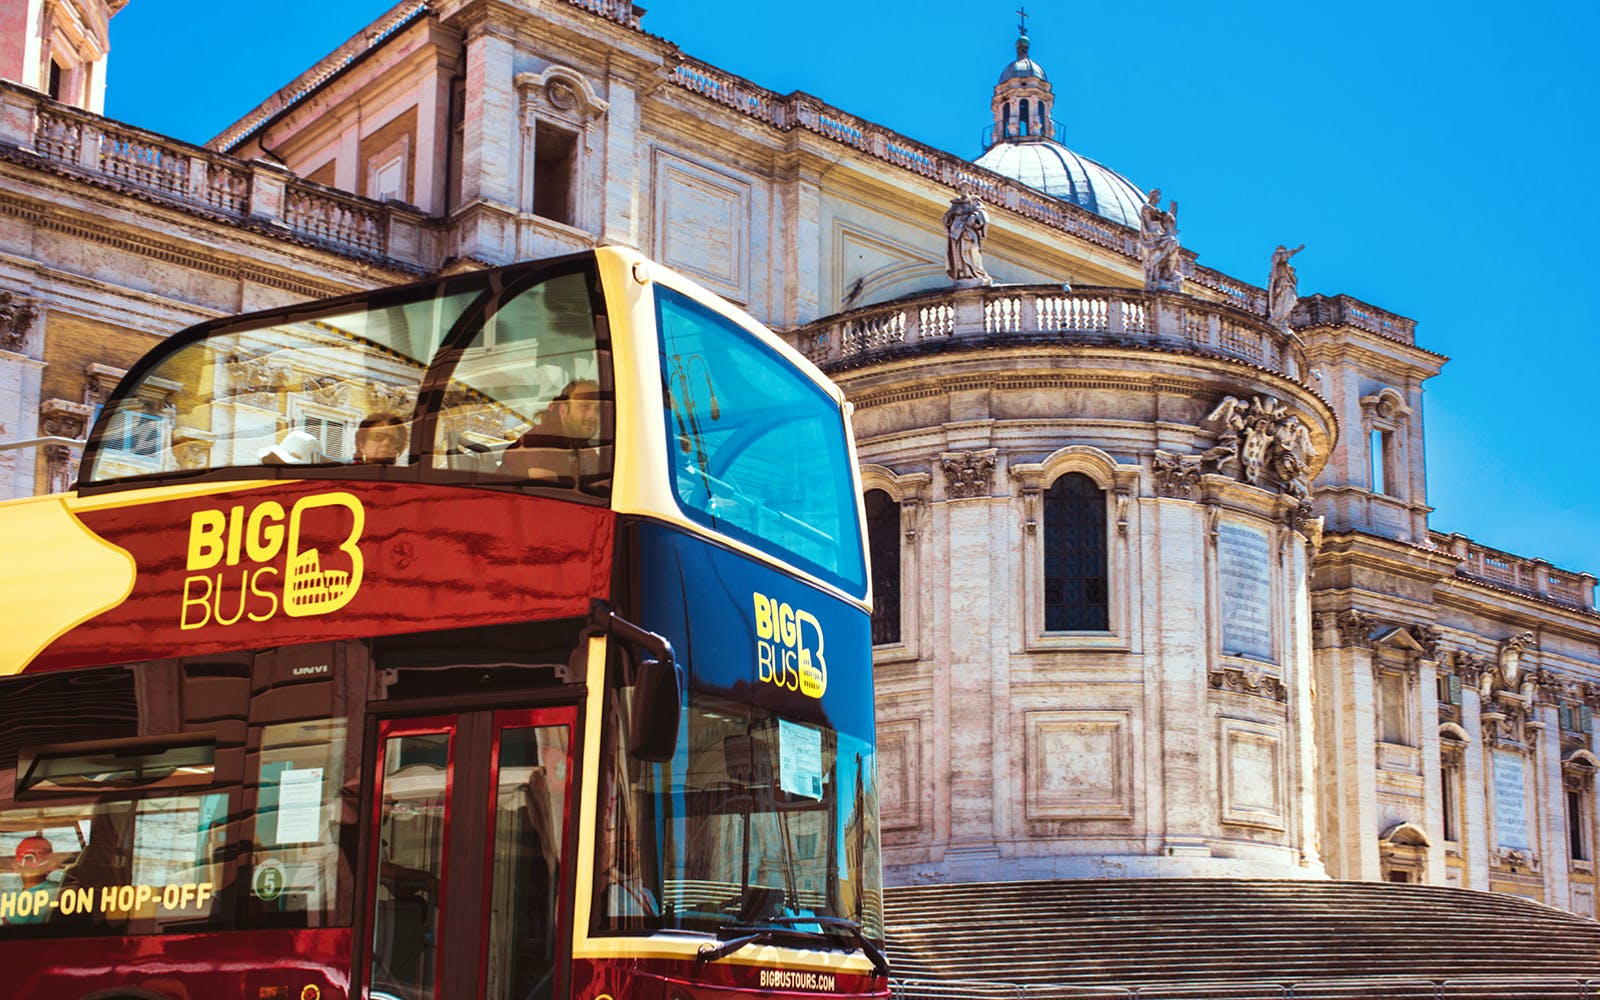 Big Bus: Tour in autobus Hop-On Hop-Off con escursioni a piedi gratuite